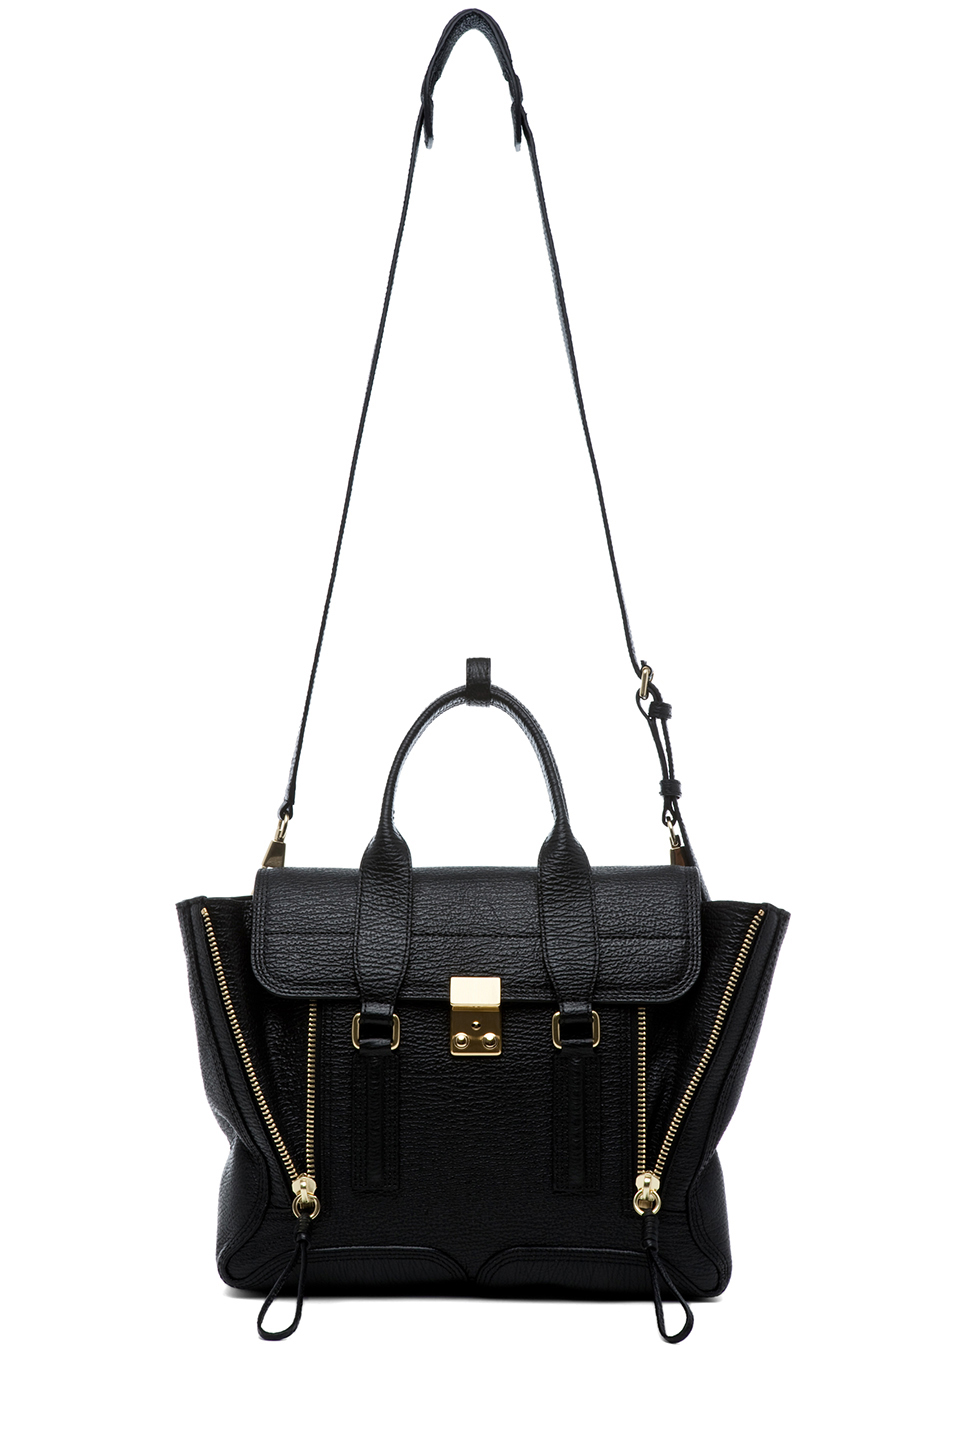 3.1 phillip lim|Medium Pashli Trapeze in Black